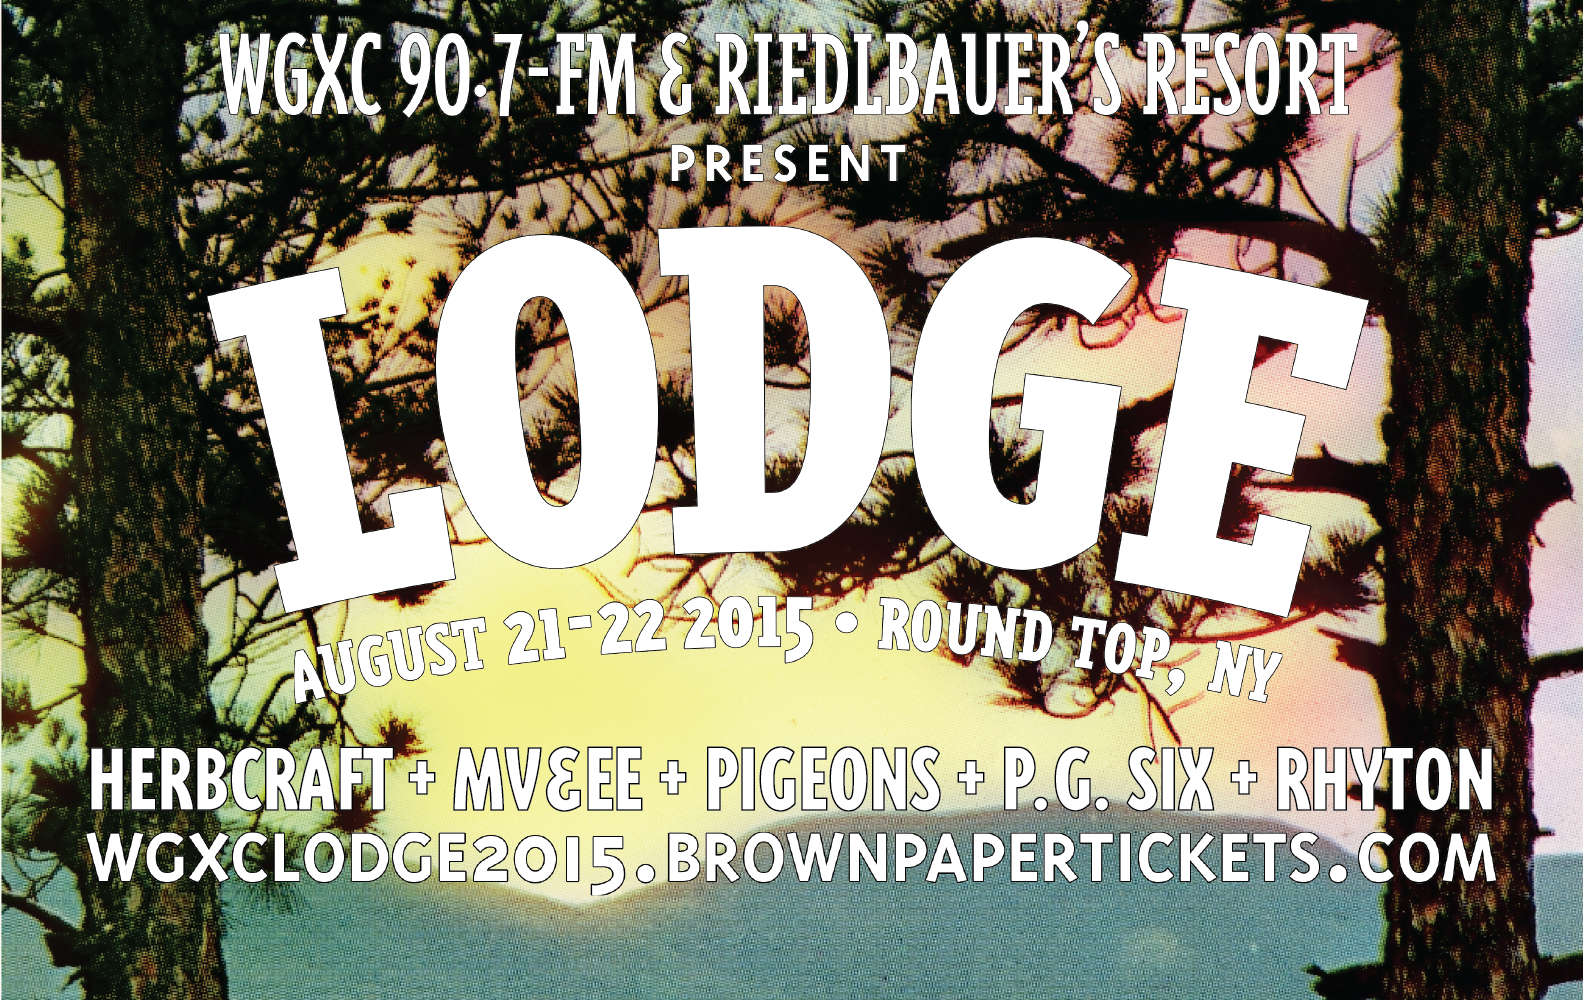 Announcing Lodge, August 21 & 22 2015 at Riedlbauer's Resort.